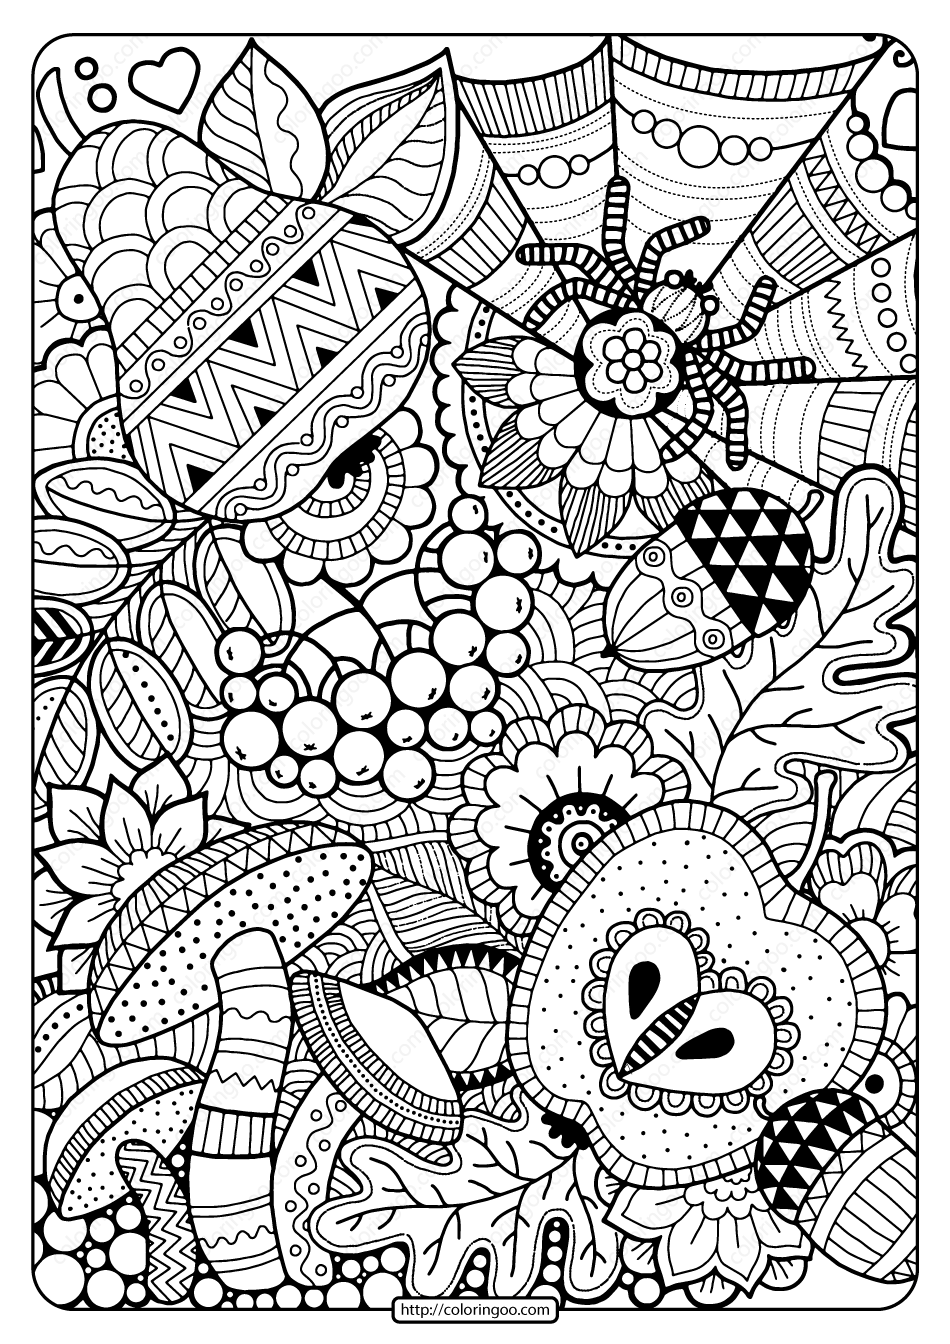 Printable Autumn Zentangle Coloring Page